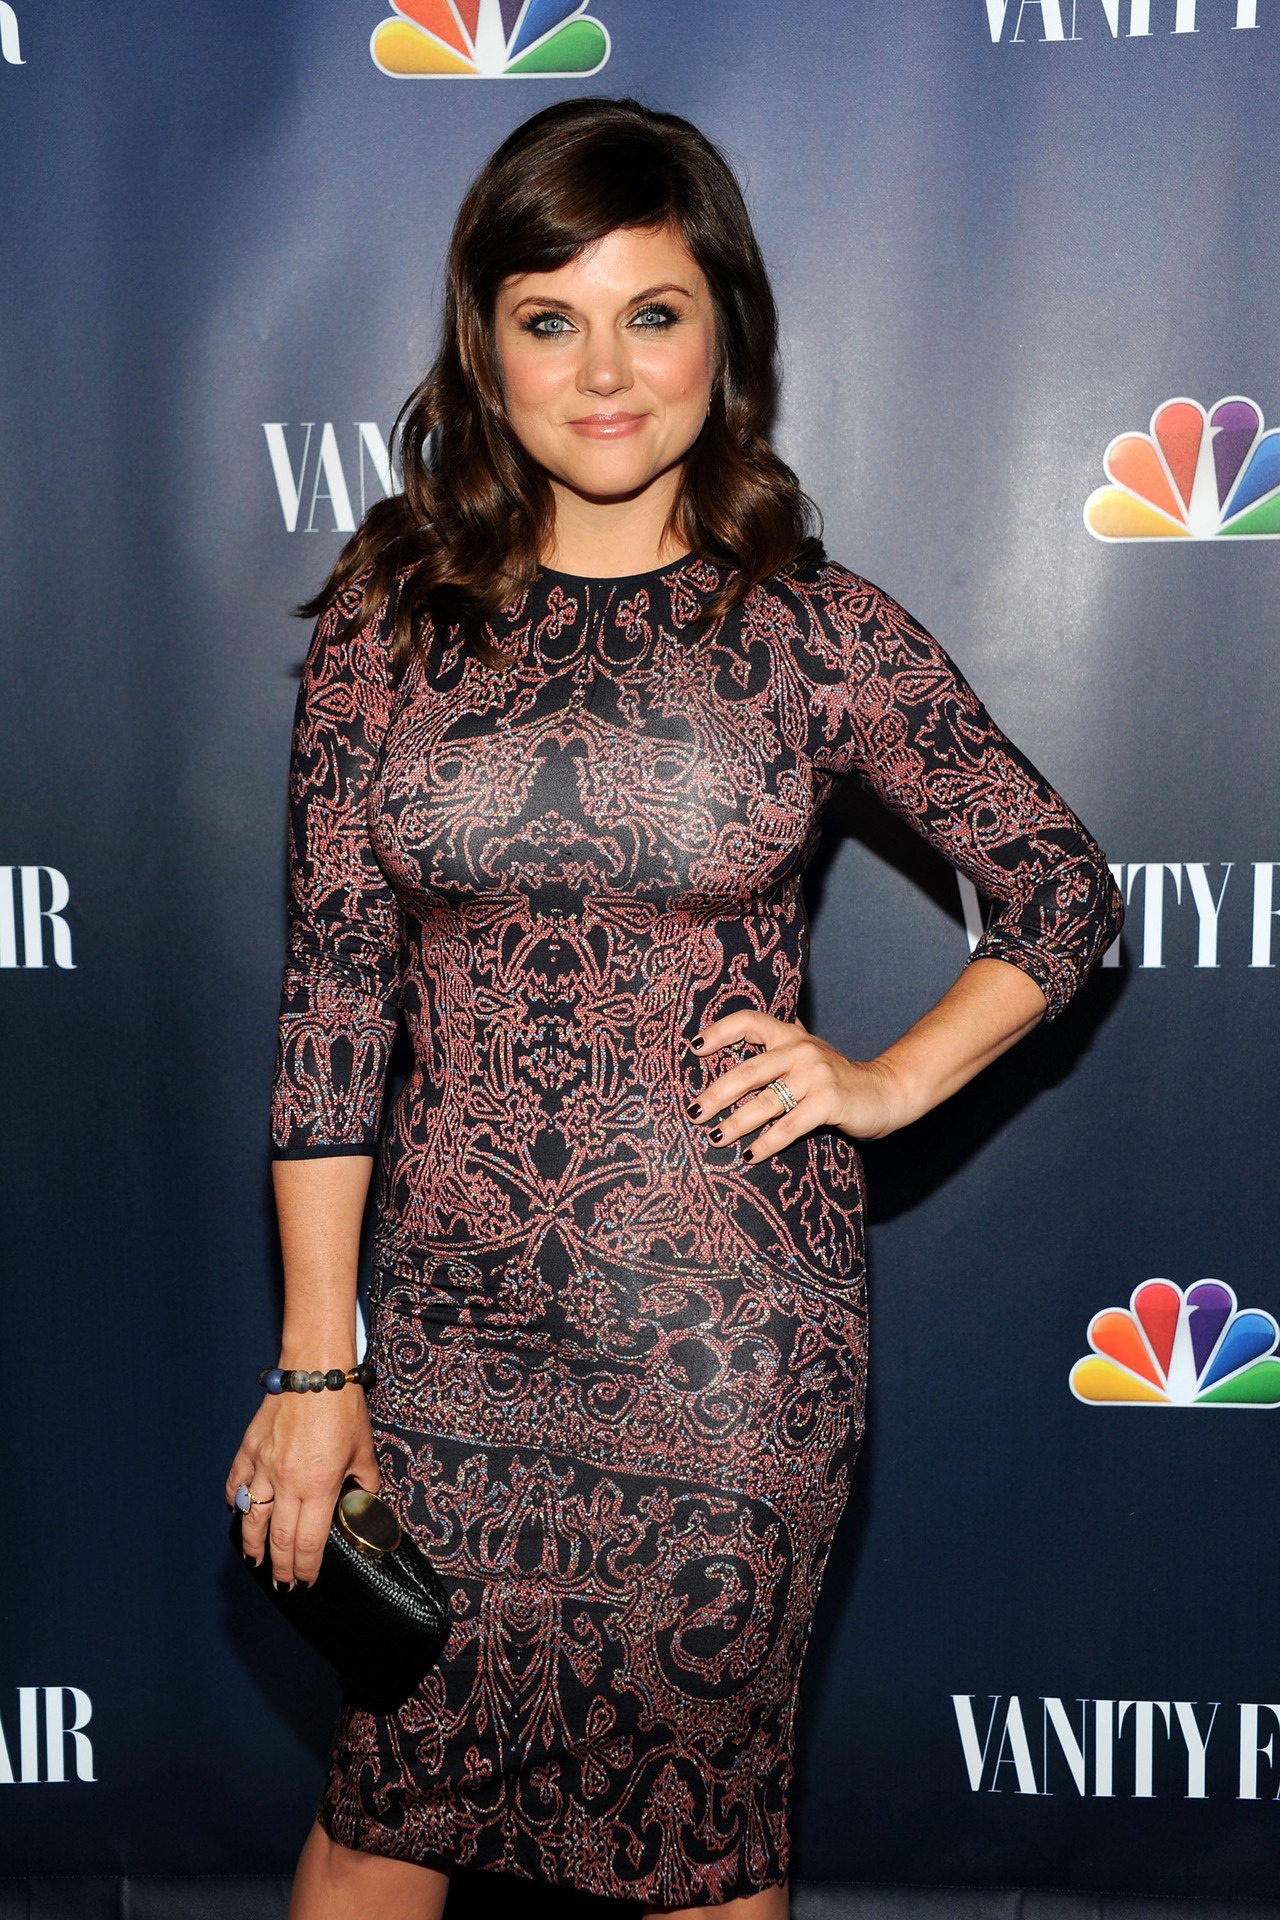 tiffani thiessen height and weighttiffani thiessen instagram, tiffani thiessen 2016, tiffani thiessen white collar, tiffani thiessen net worth, tiffani thiessen style, tiffani thiessen saved by the bell, tiffani thiessen height and weight, tiffani thiessen cooking show, tiffani thiessen 90210 pictures, tiffani thiessen lasagna, tiffani thiessen show, tiffani thiessen blog, tiffani thiessen dancing with the stars, tiffani thiessen wiki, tiffani thiessen wdw, tiffani thiessen dancing, tiffani thiessen food network, tiffani thiessen 90210, tiffani thiessen daughter, tiffani thiessen beverly hills